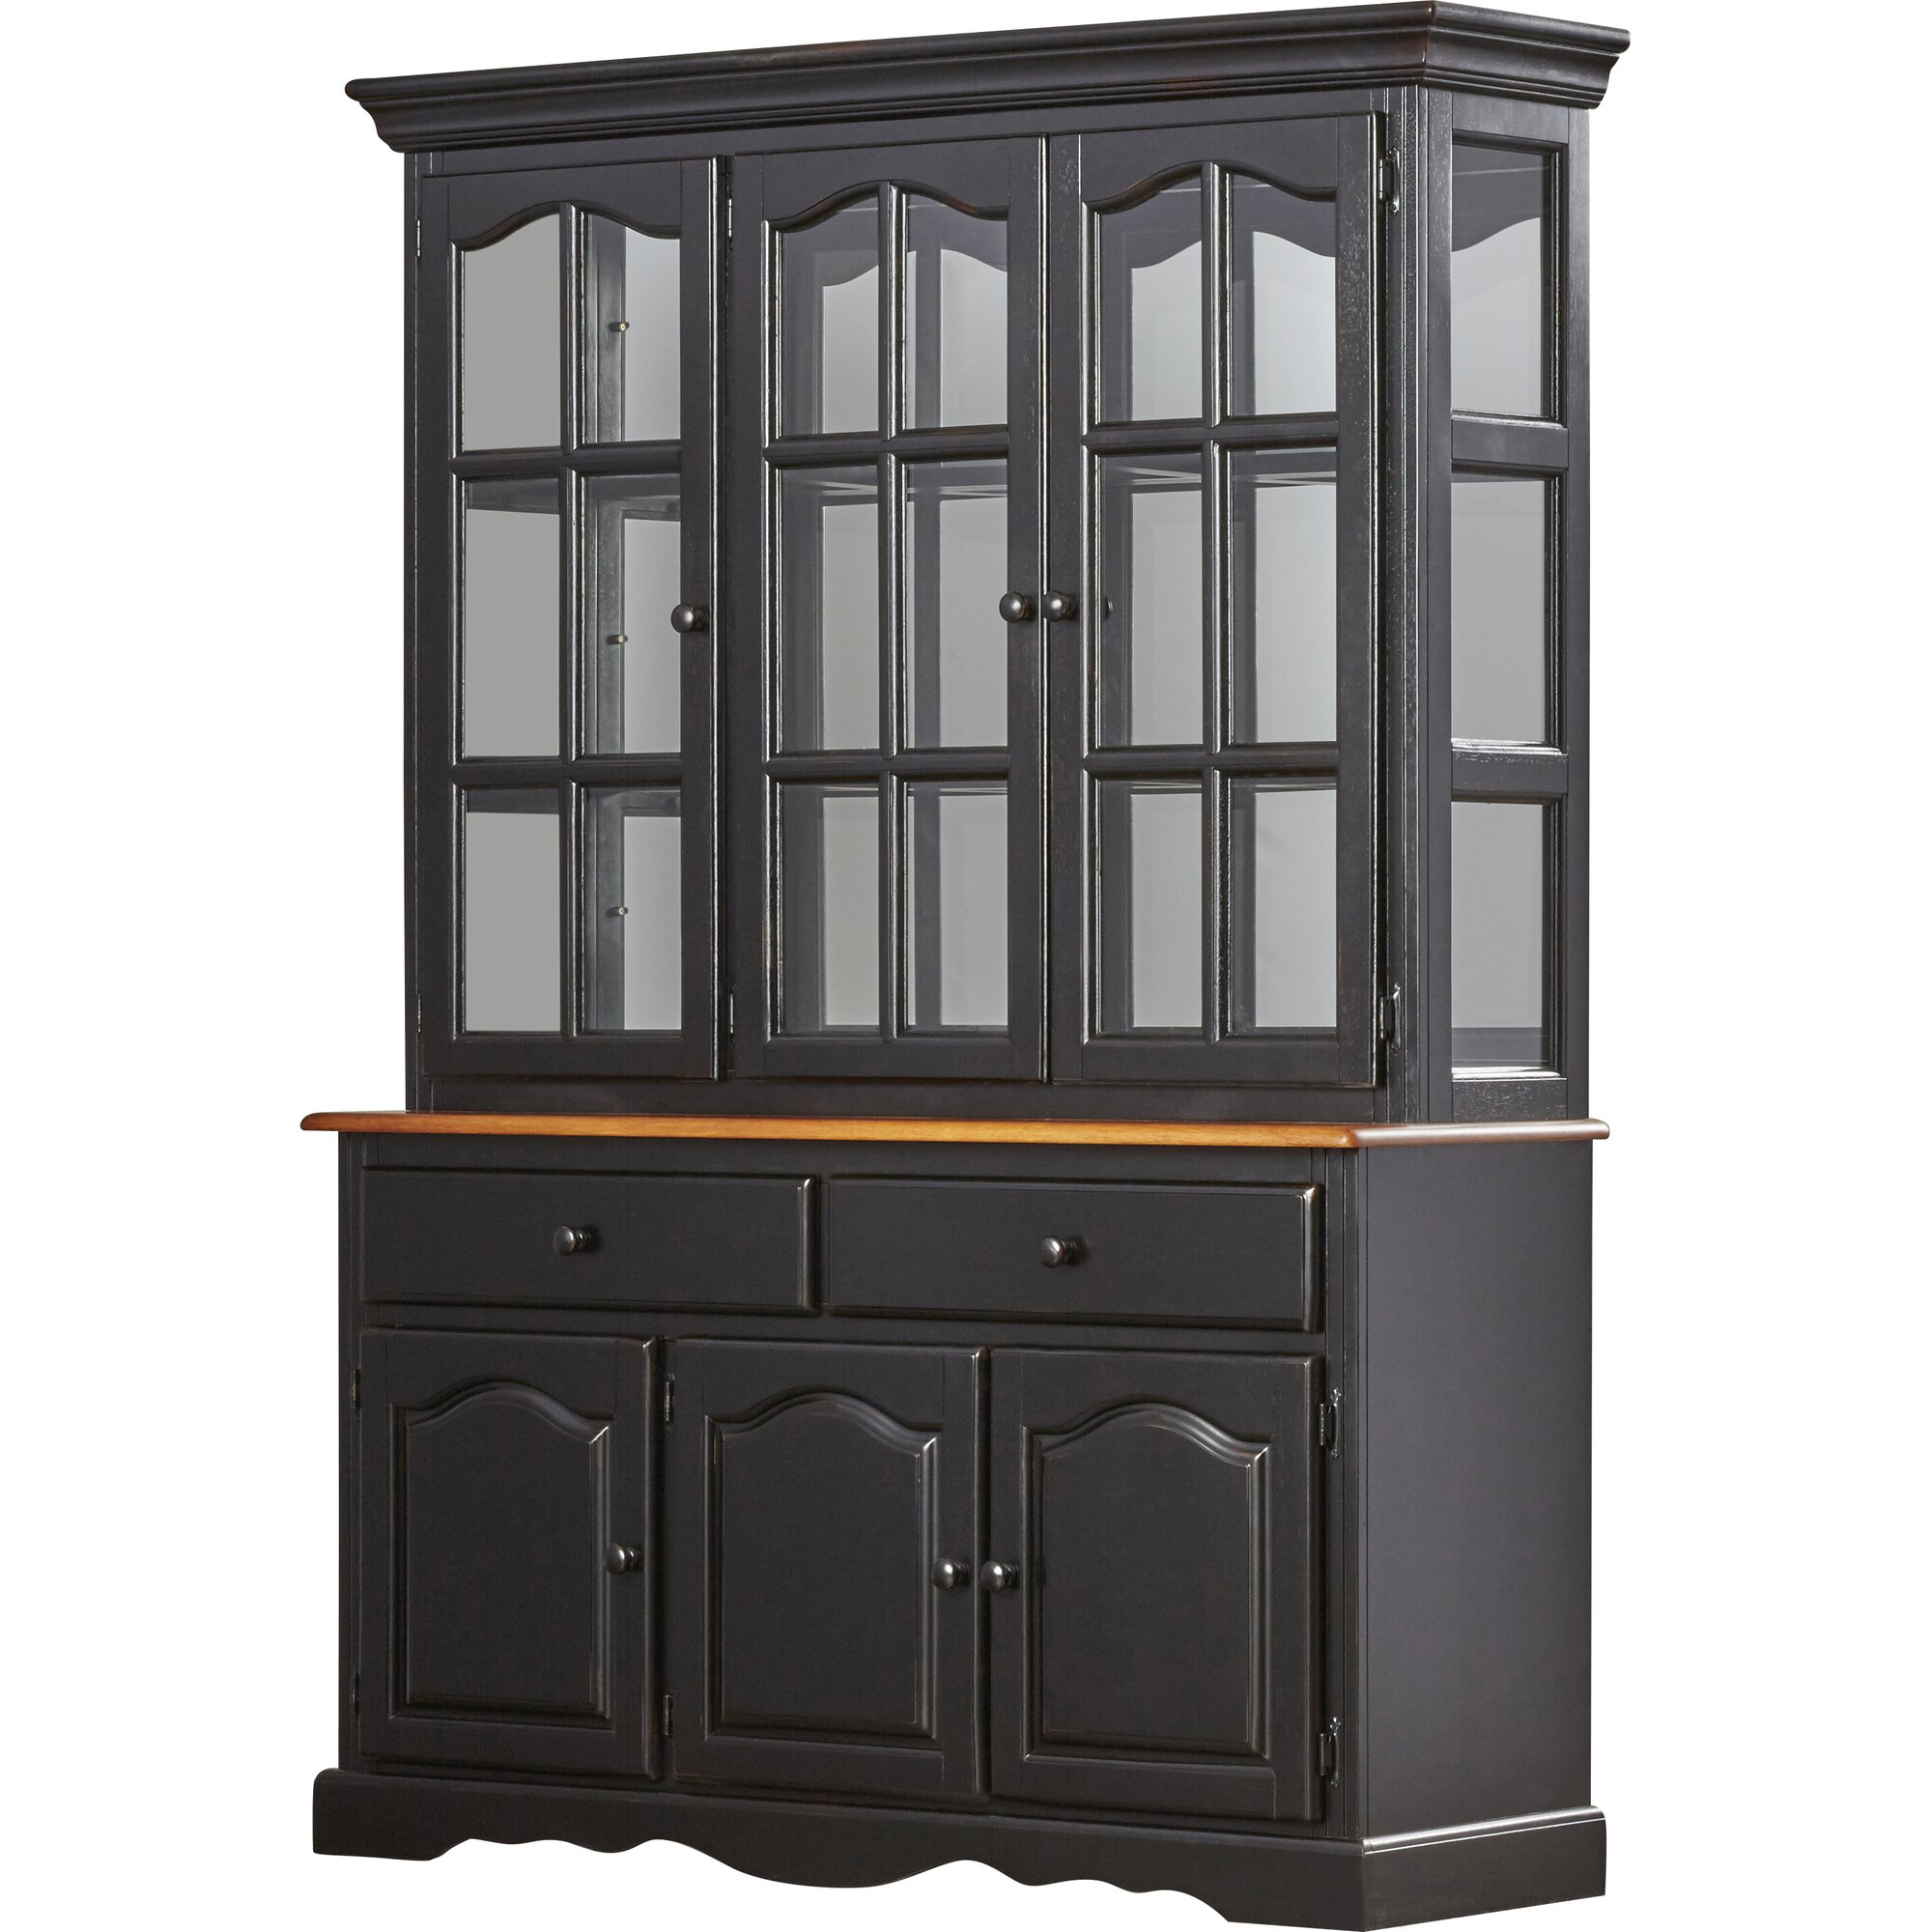 Sunset trading sunset selections dining china cabinet for Wayfair kitchen cabinets